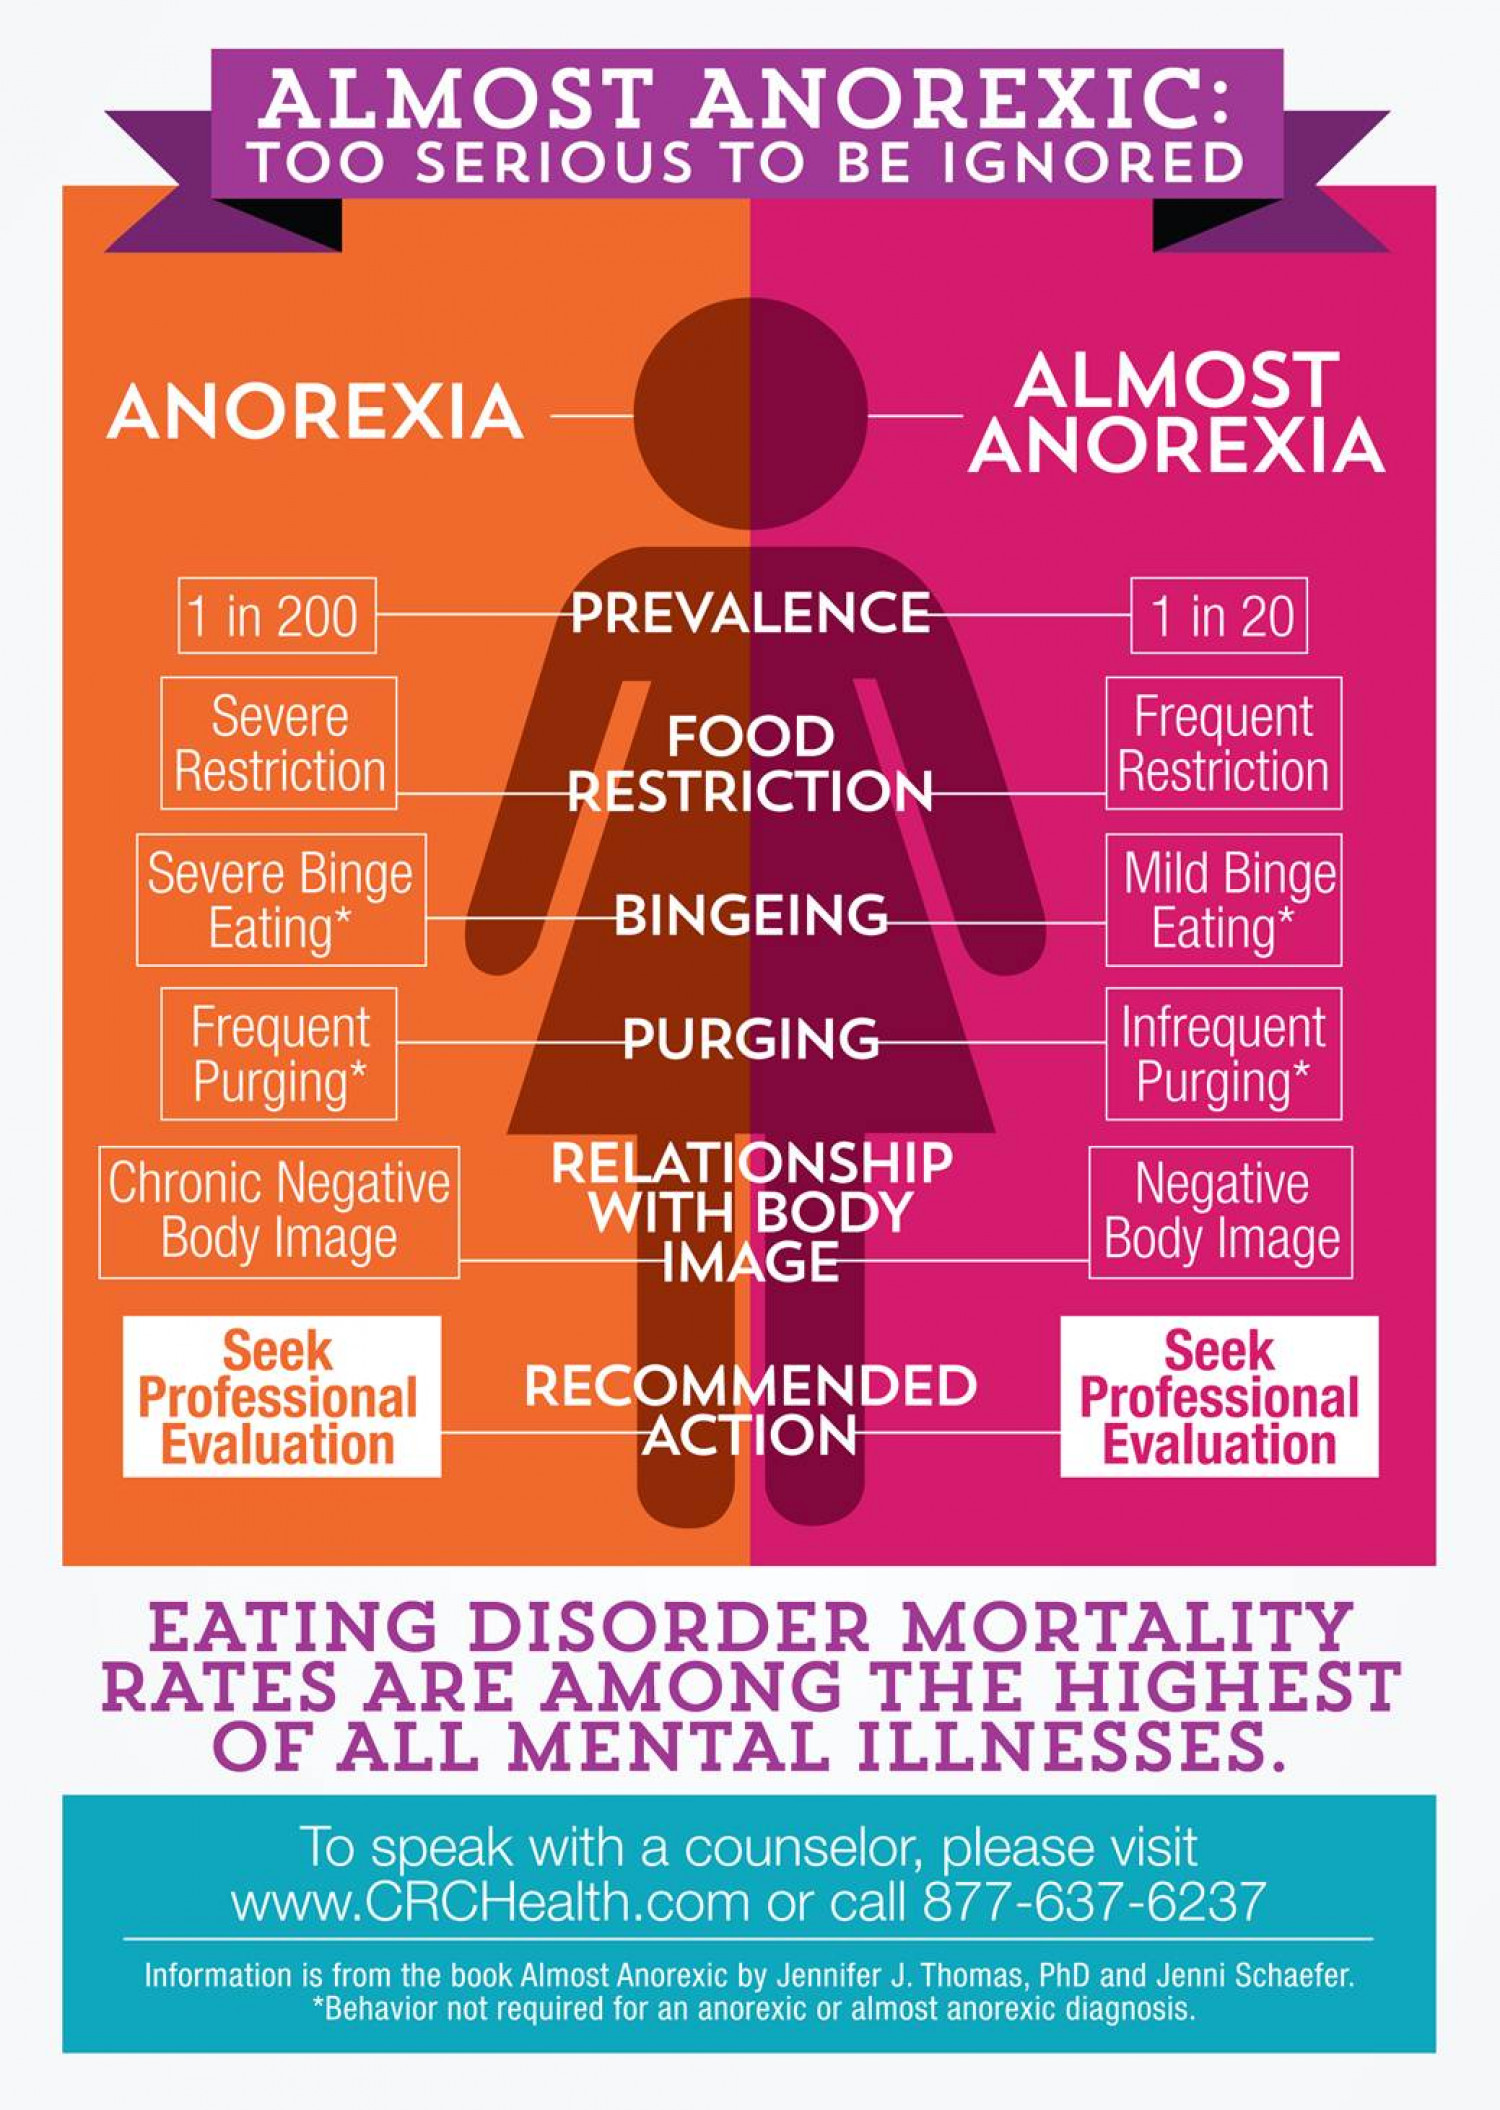 Almost Anorexic: Too Serious To Be Ignored Infographic